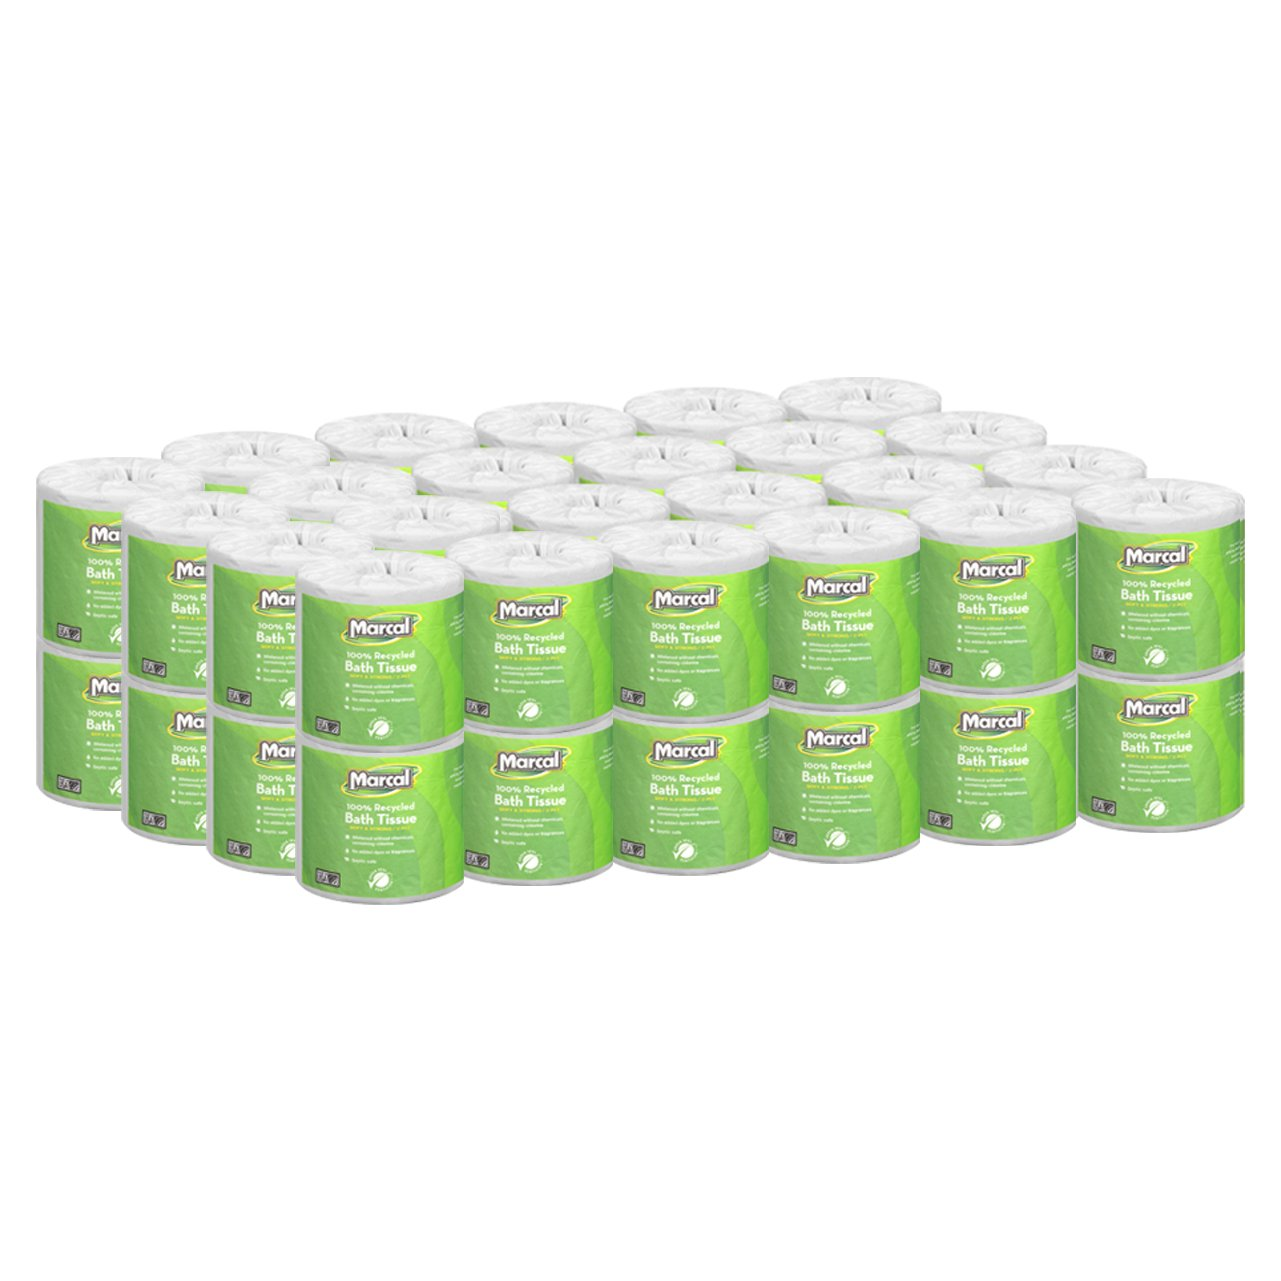 """Marcal Toilet Paper 100% Recycled - 2 Ply, White Bath Tissue, 504 Sheets Per Roll - 48 """"Roll Out"""" Rolls Per Case Green Seal Certified Toilet Paper 06495"""